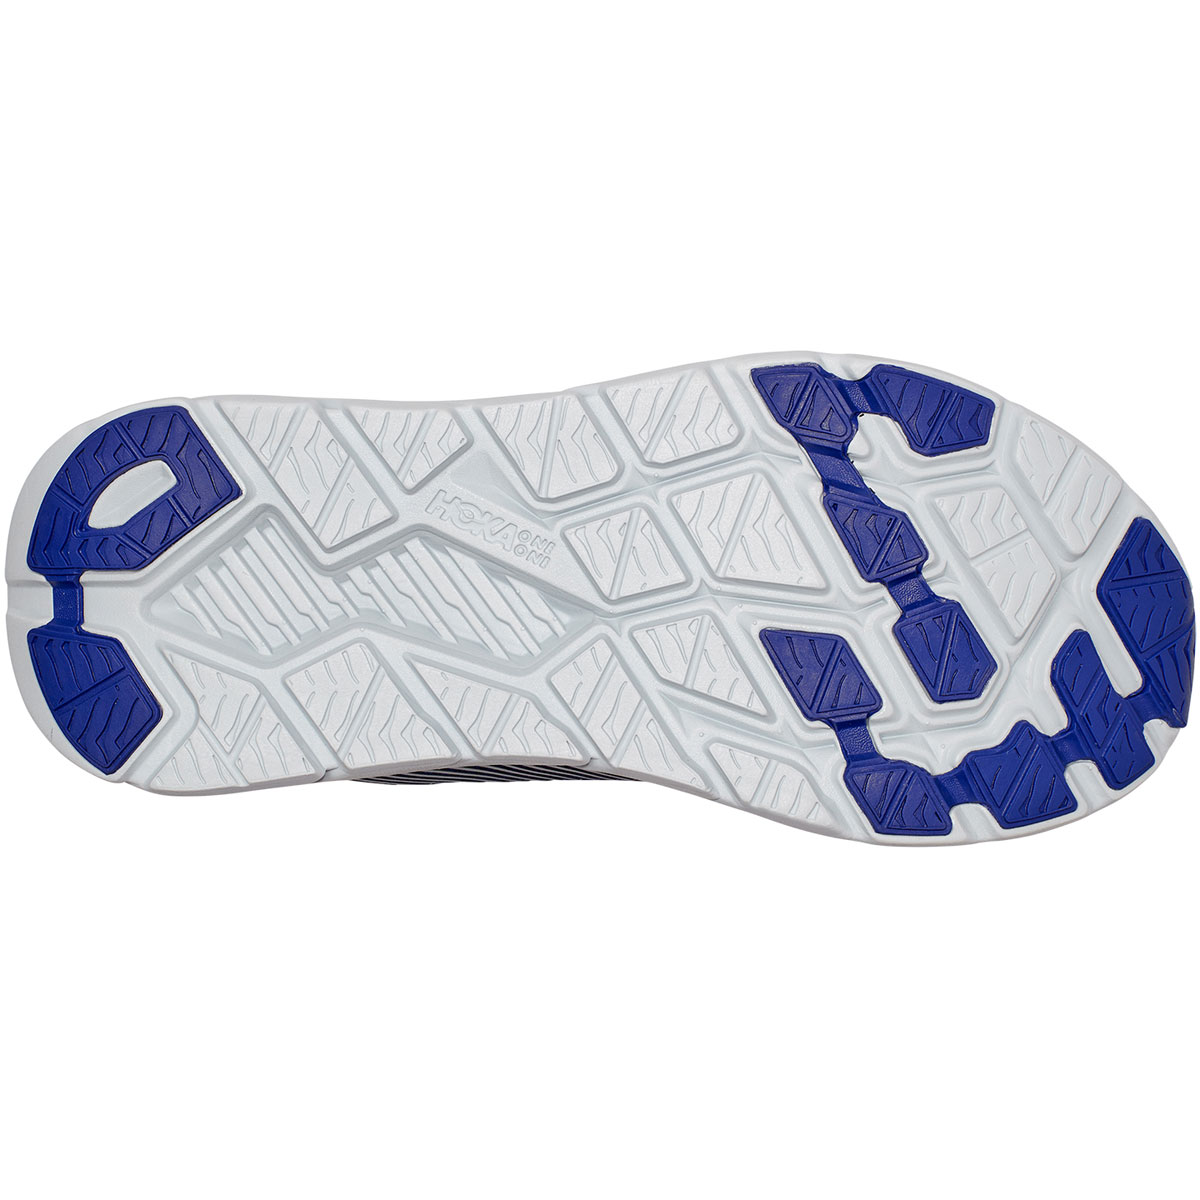 Women's Hoka One One Rincon 2 Running Shoe - Color: Clematis Blue - Size: 5 - Width: Regular, Clematis Blue, large, image 3